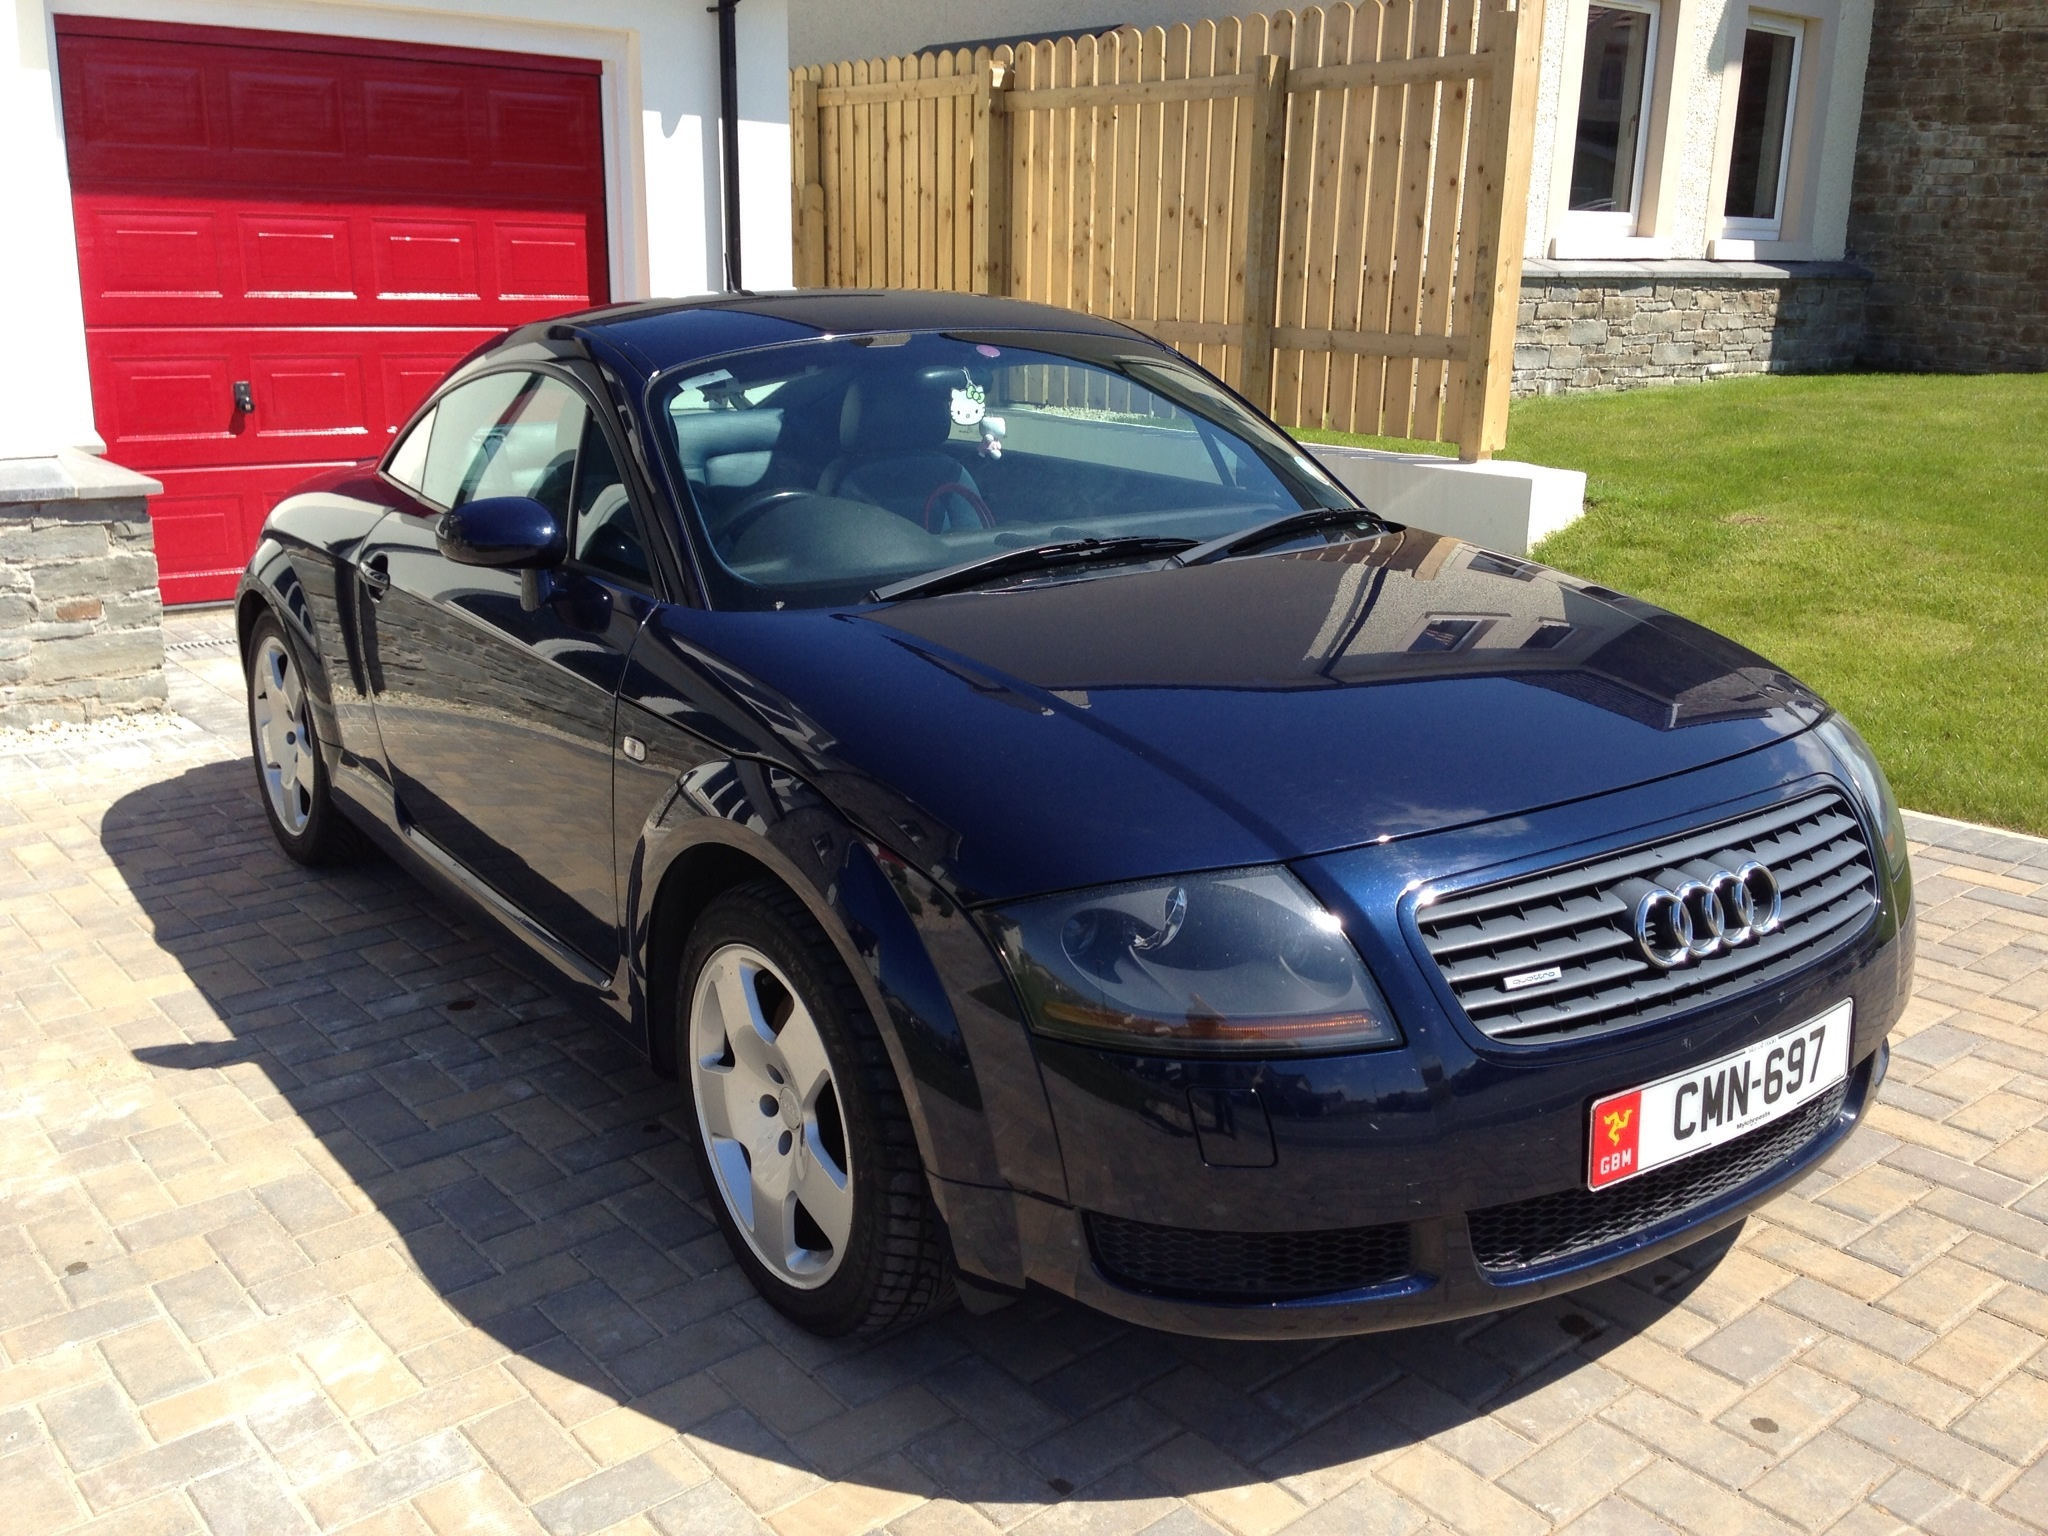 Audi TT Coupe 225bhp 1800 from private